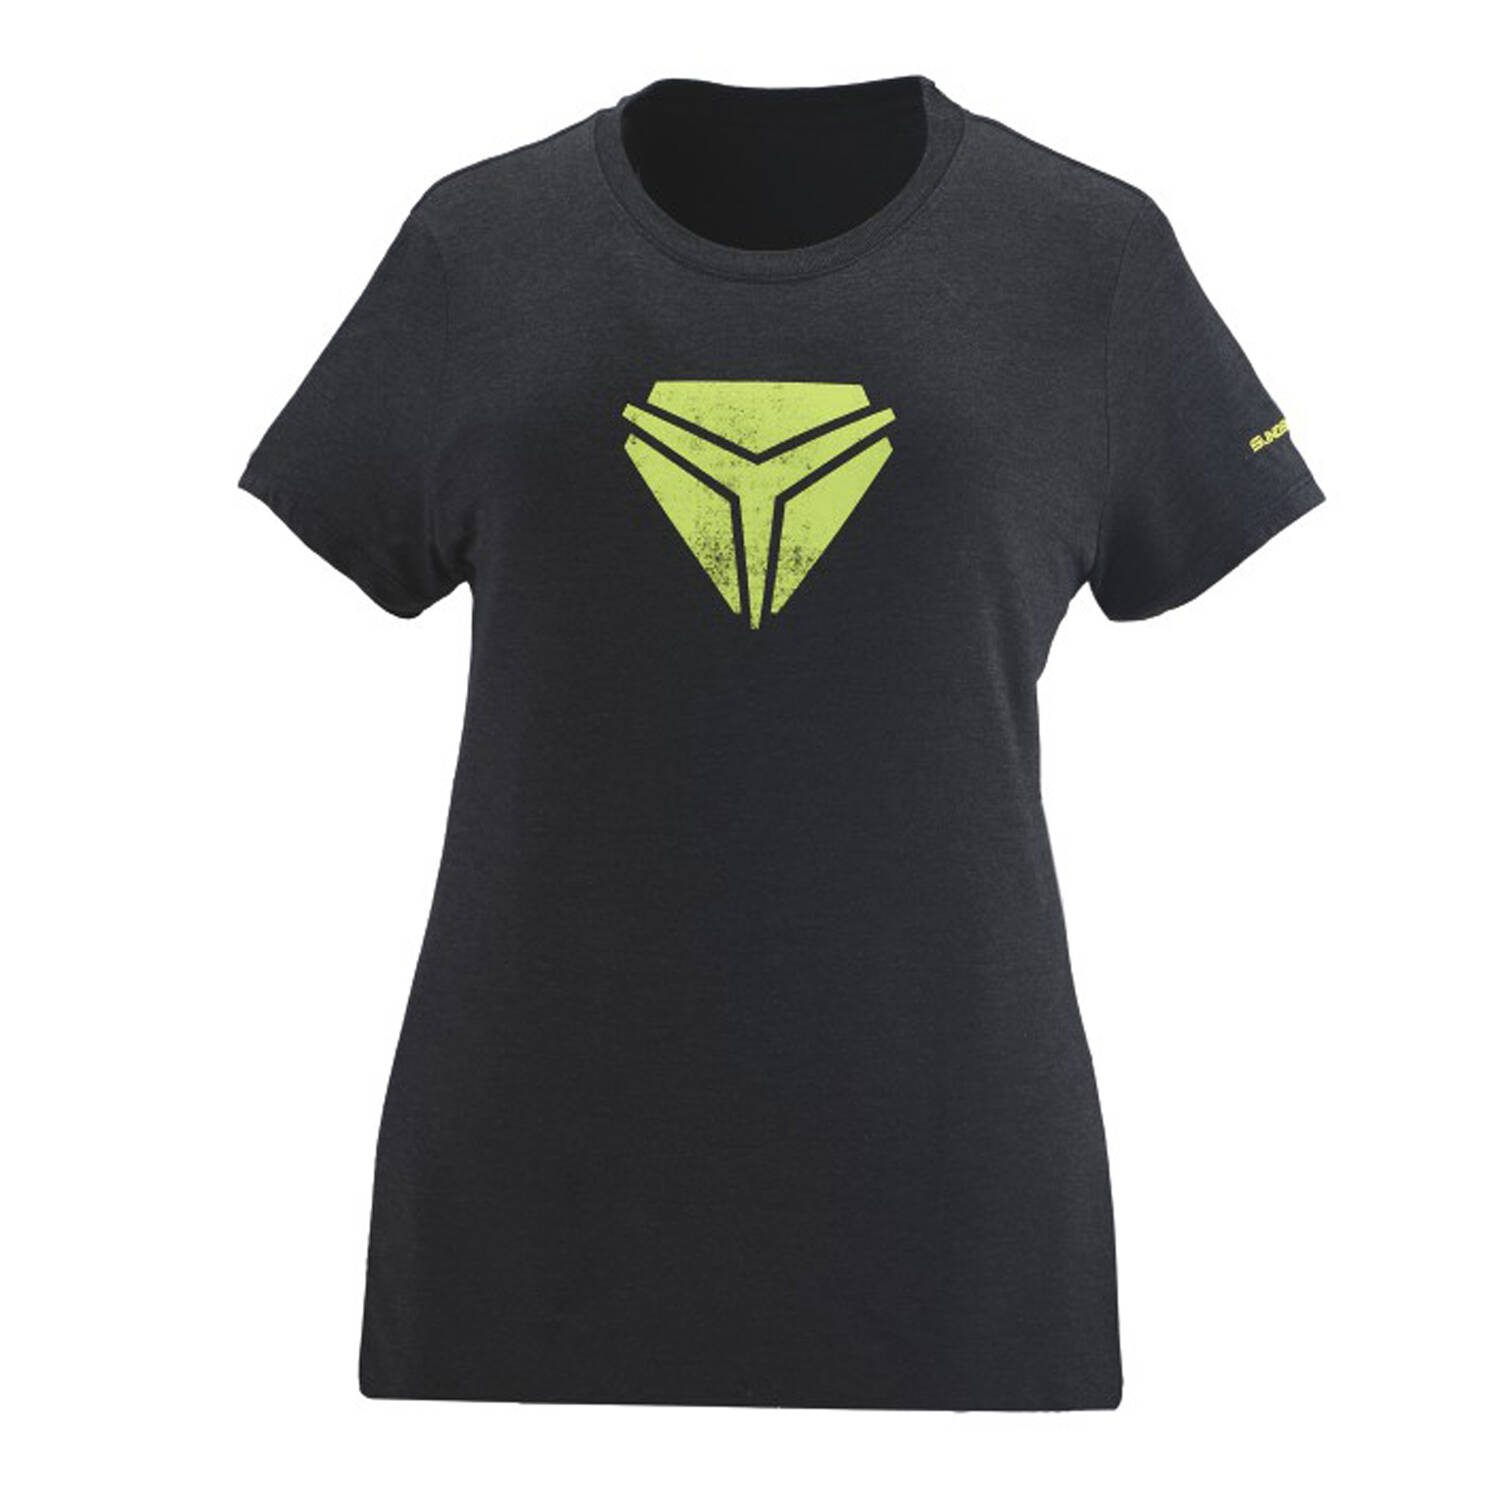 Women's Vintage Shield Tee - Black Frost